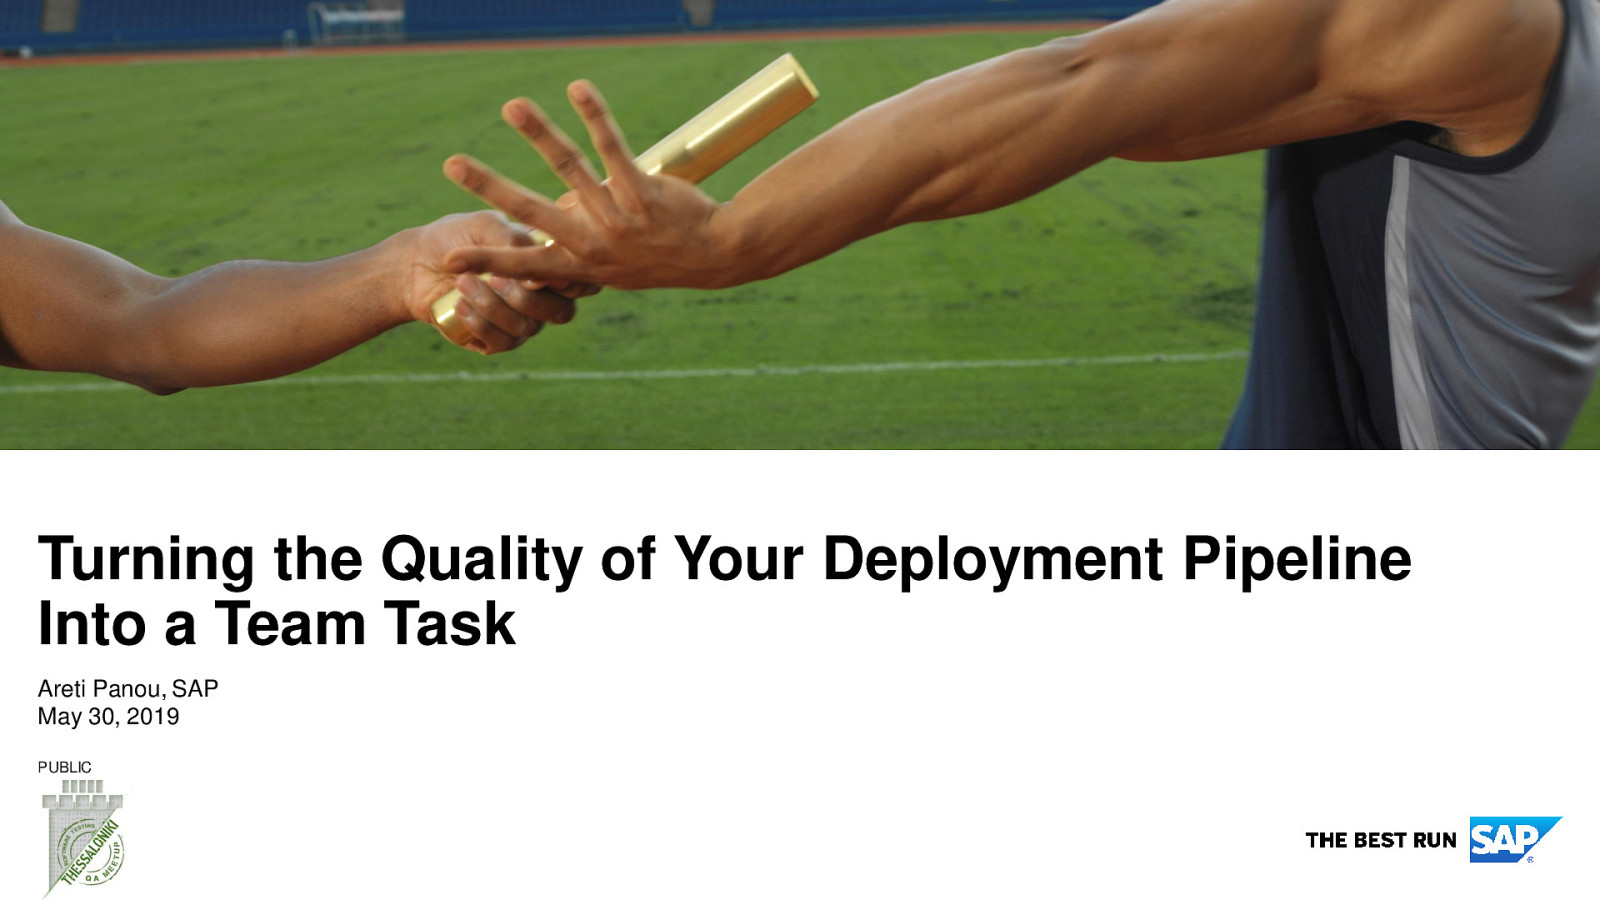 Turning the Quality of Your Deployment Pipeline Into a Team Task